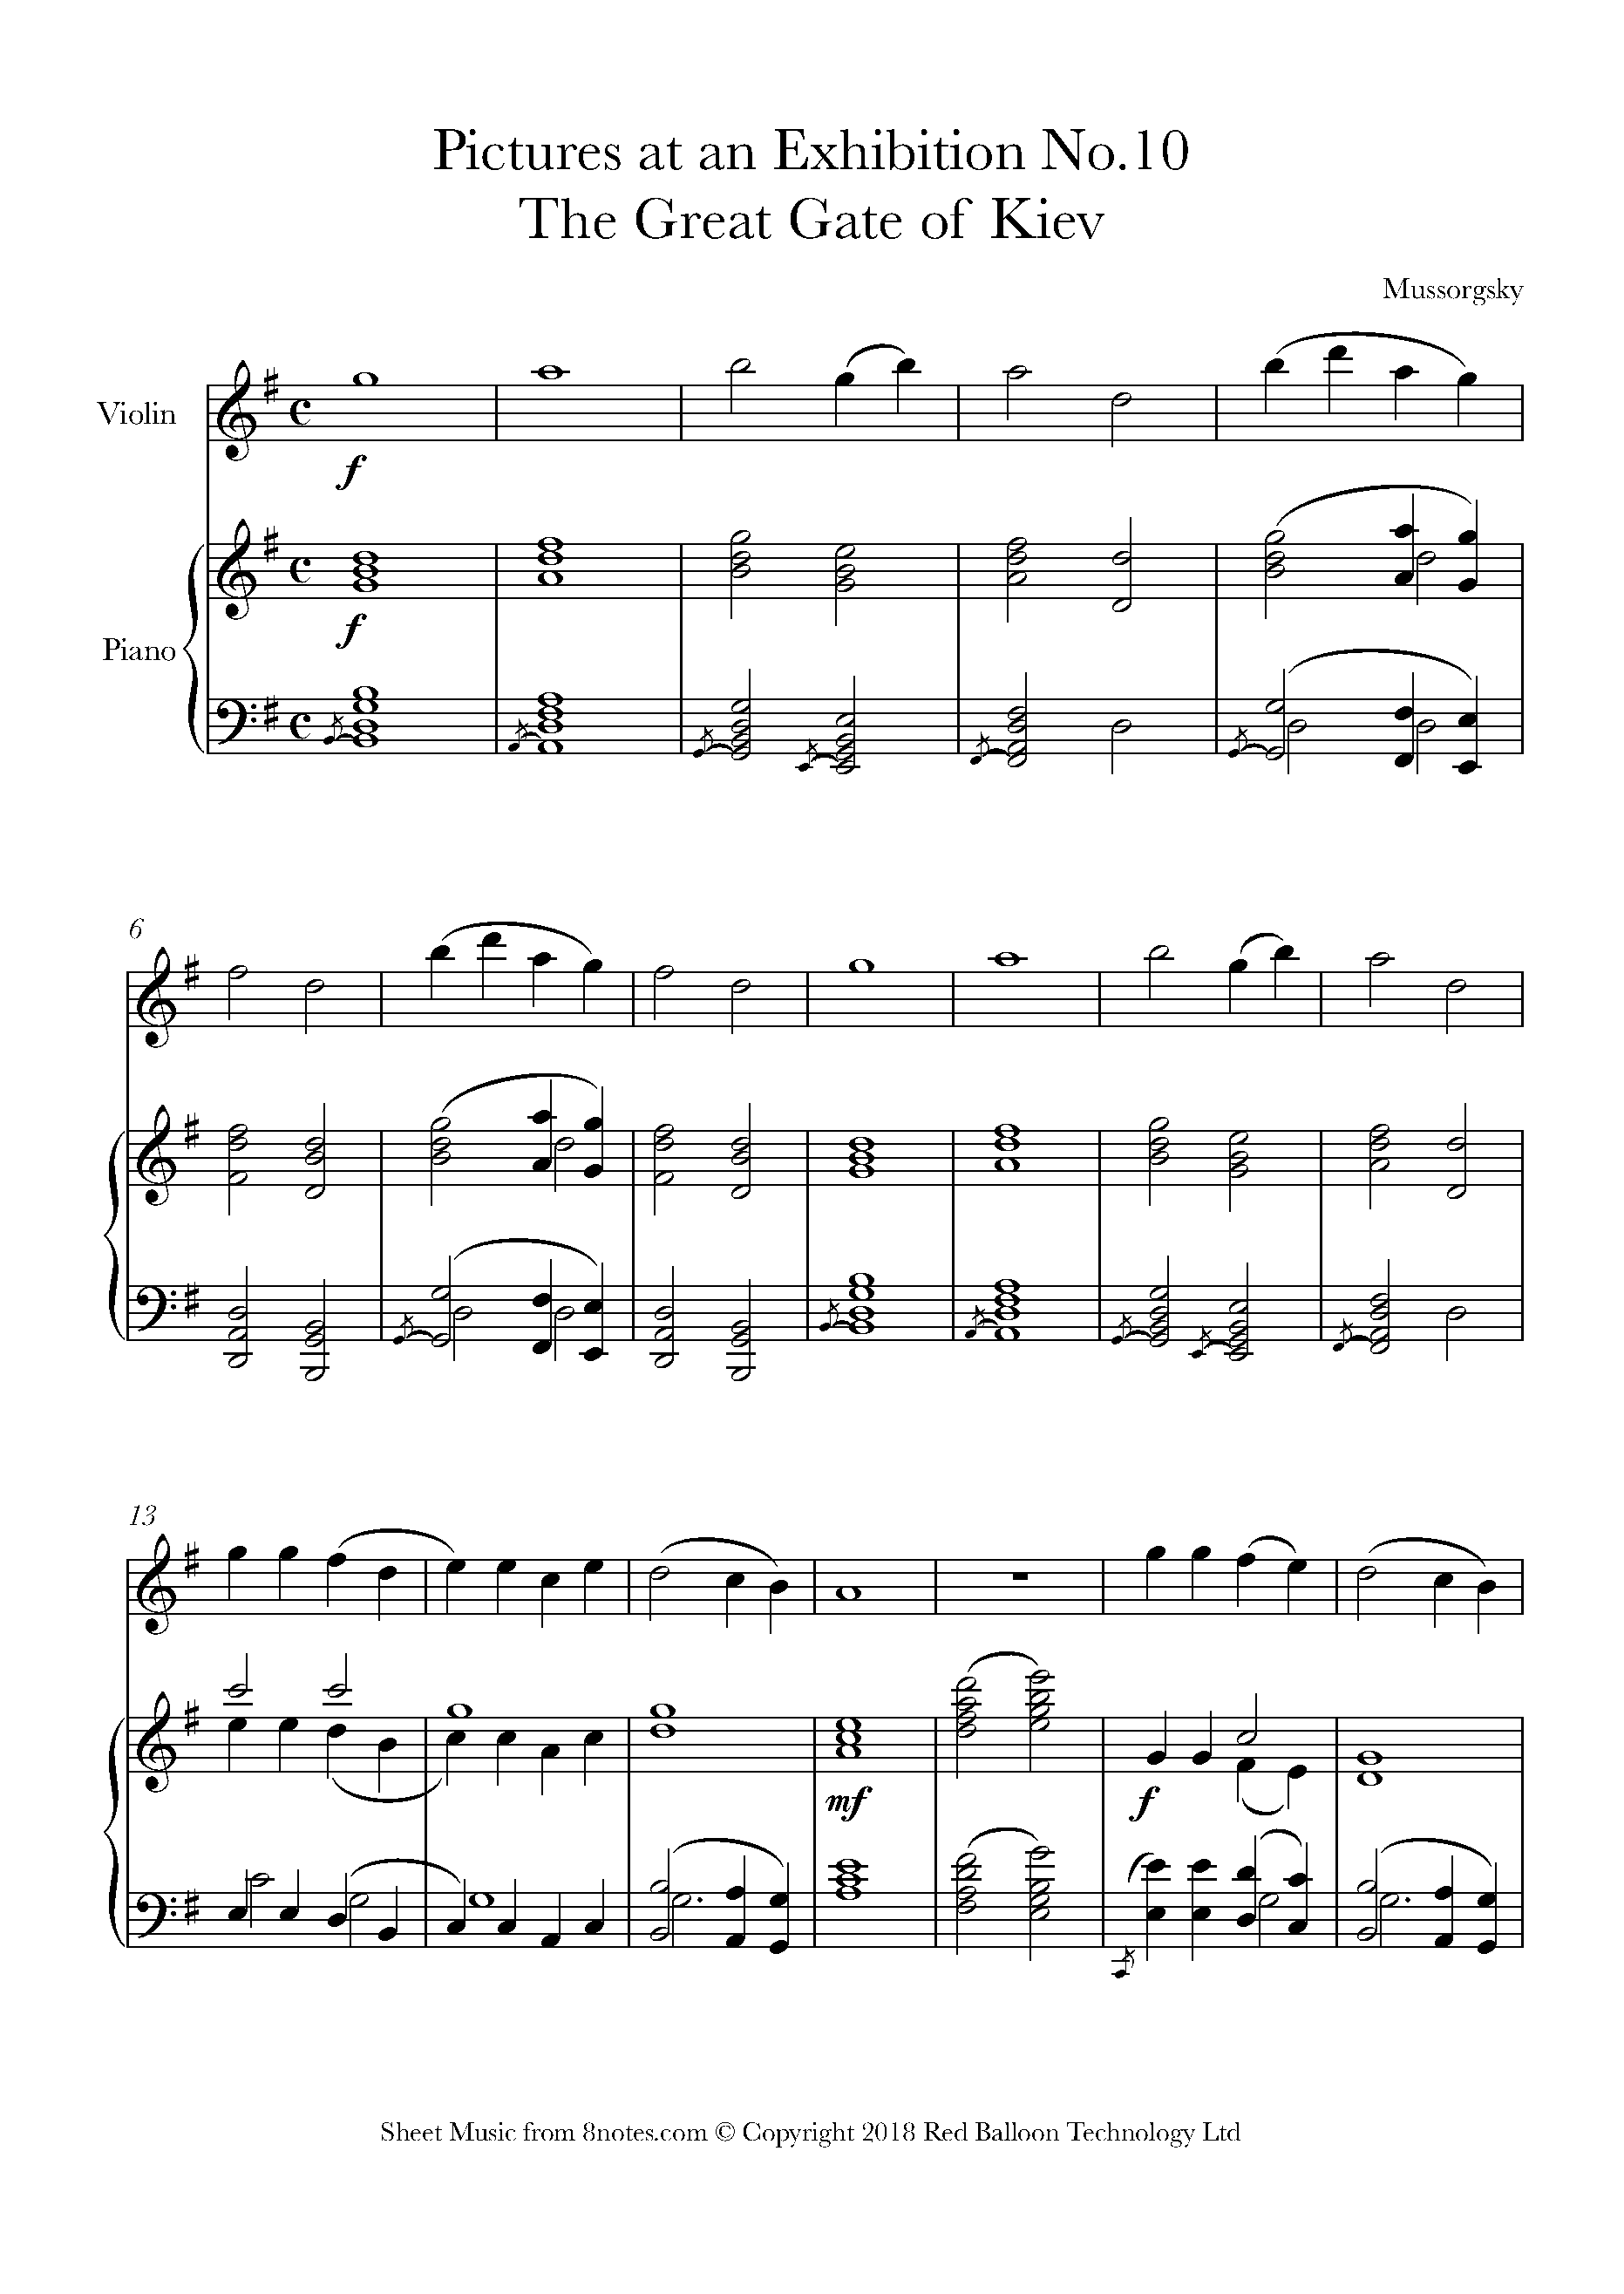 mussorgsky - pictures at an exhibition no.10 - the great gate of kiev sheet  music for violin - 8notes.com  8notes